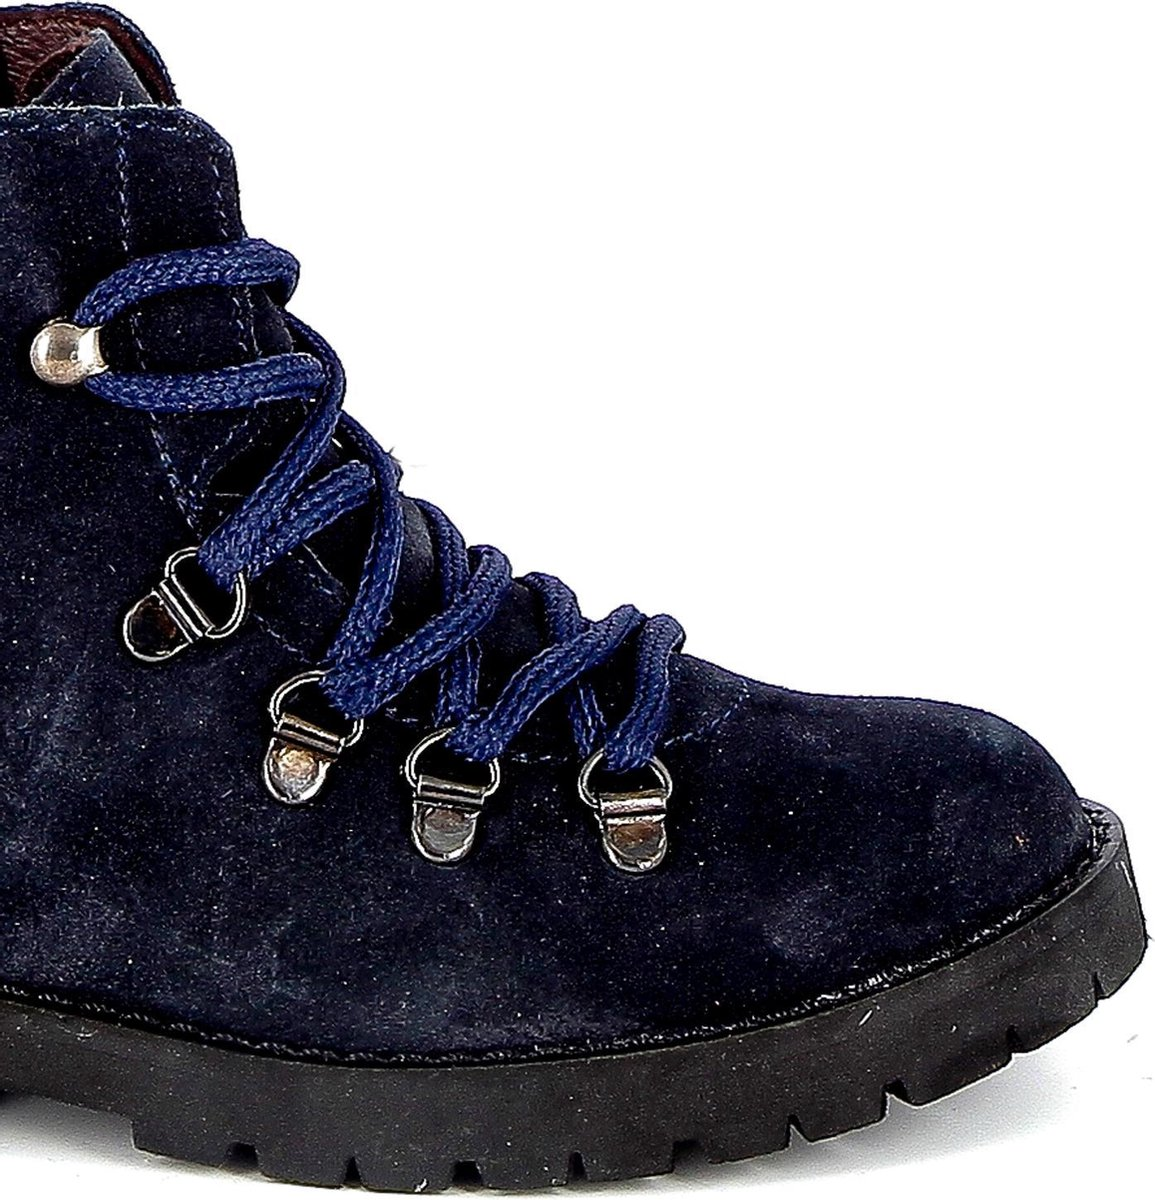 HUSH PUPPIES Ankle Boots TOOBS